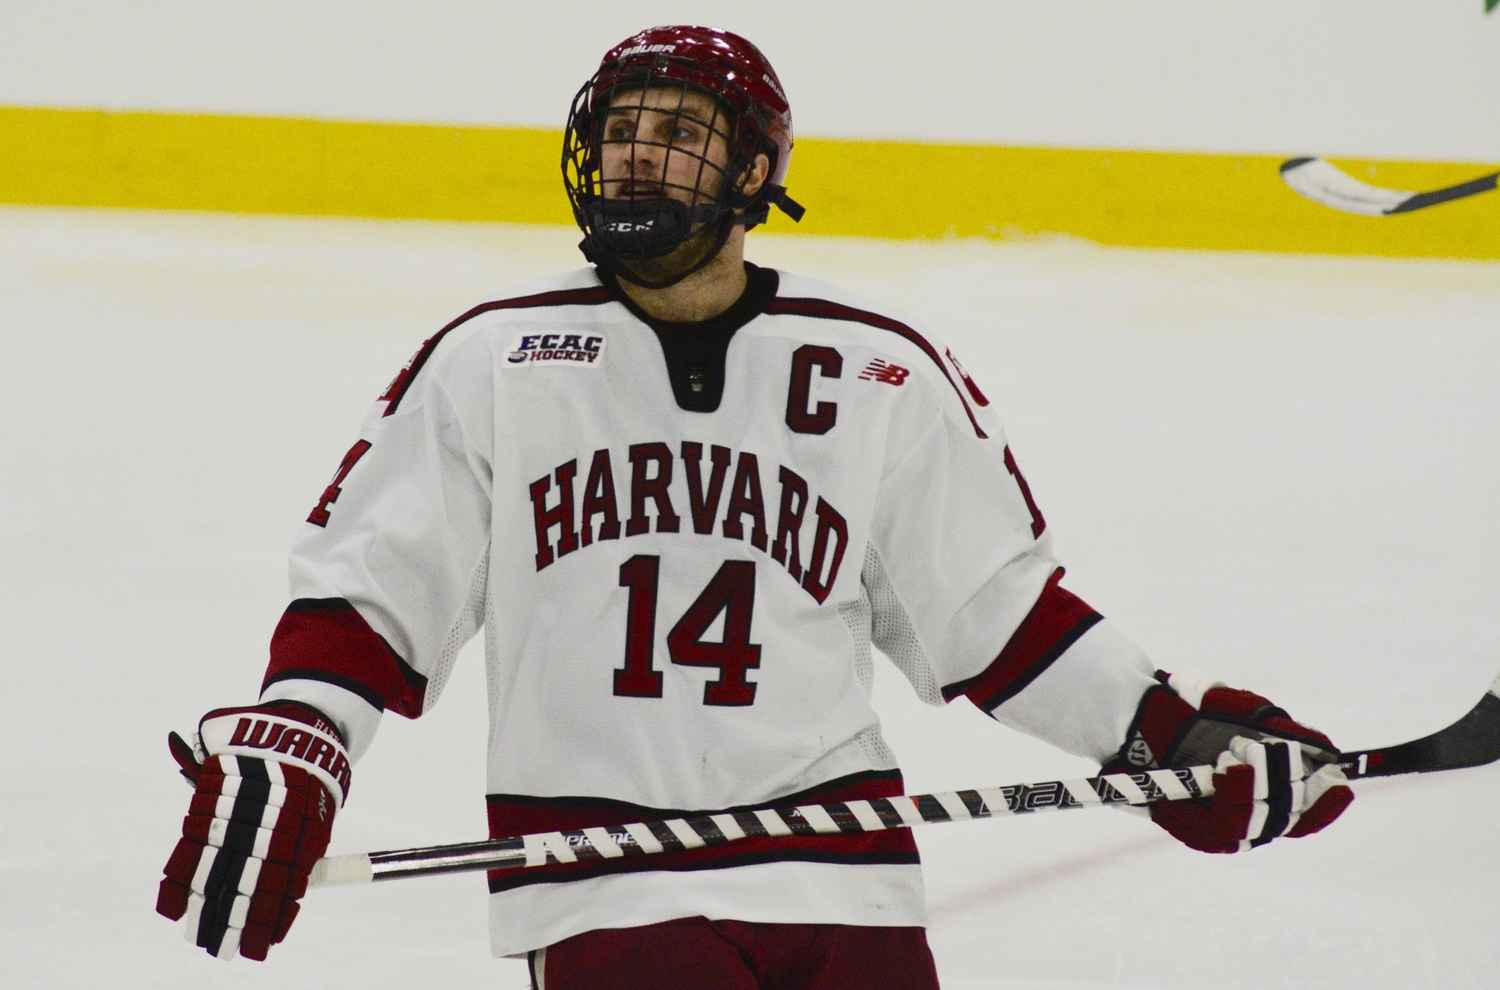 Co-captain Alexander Kerfoot's first goal of the season with 7:08 remaining in Friday night's ECAC opener earned Harvard a point out of what was an otherwise frustrating contest for the Crimson.